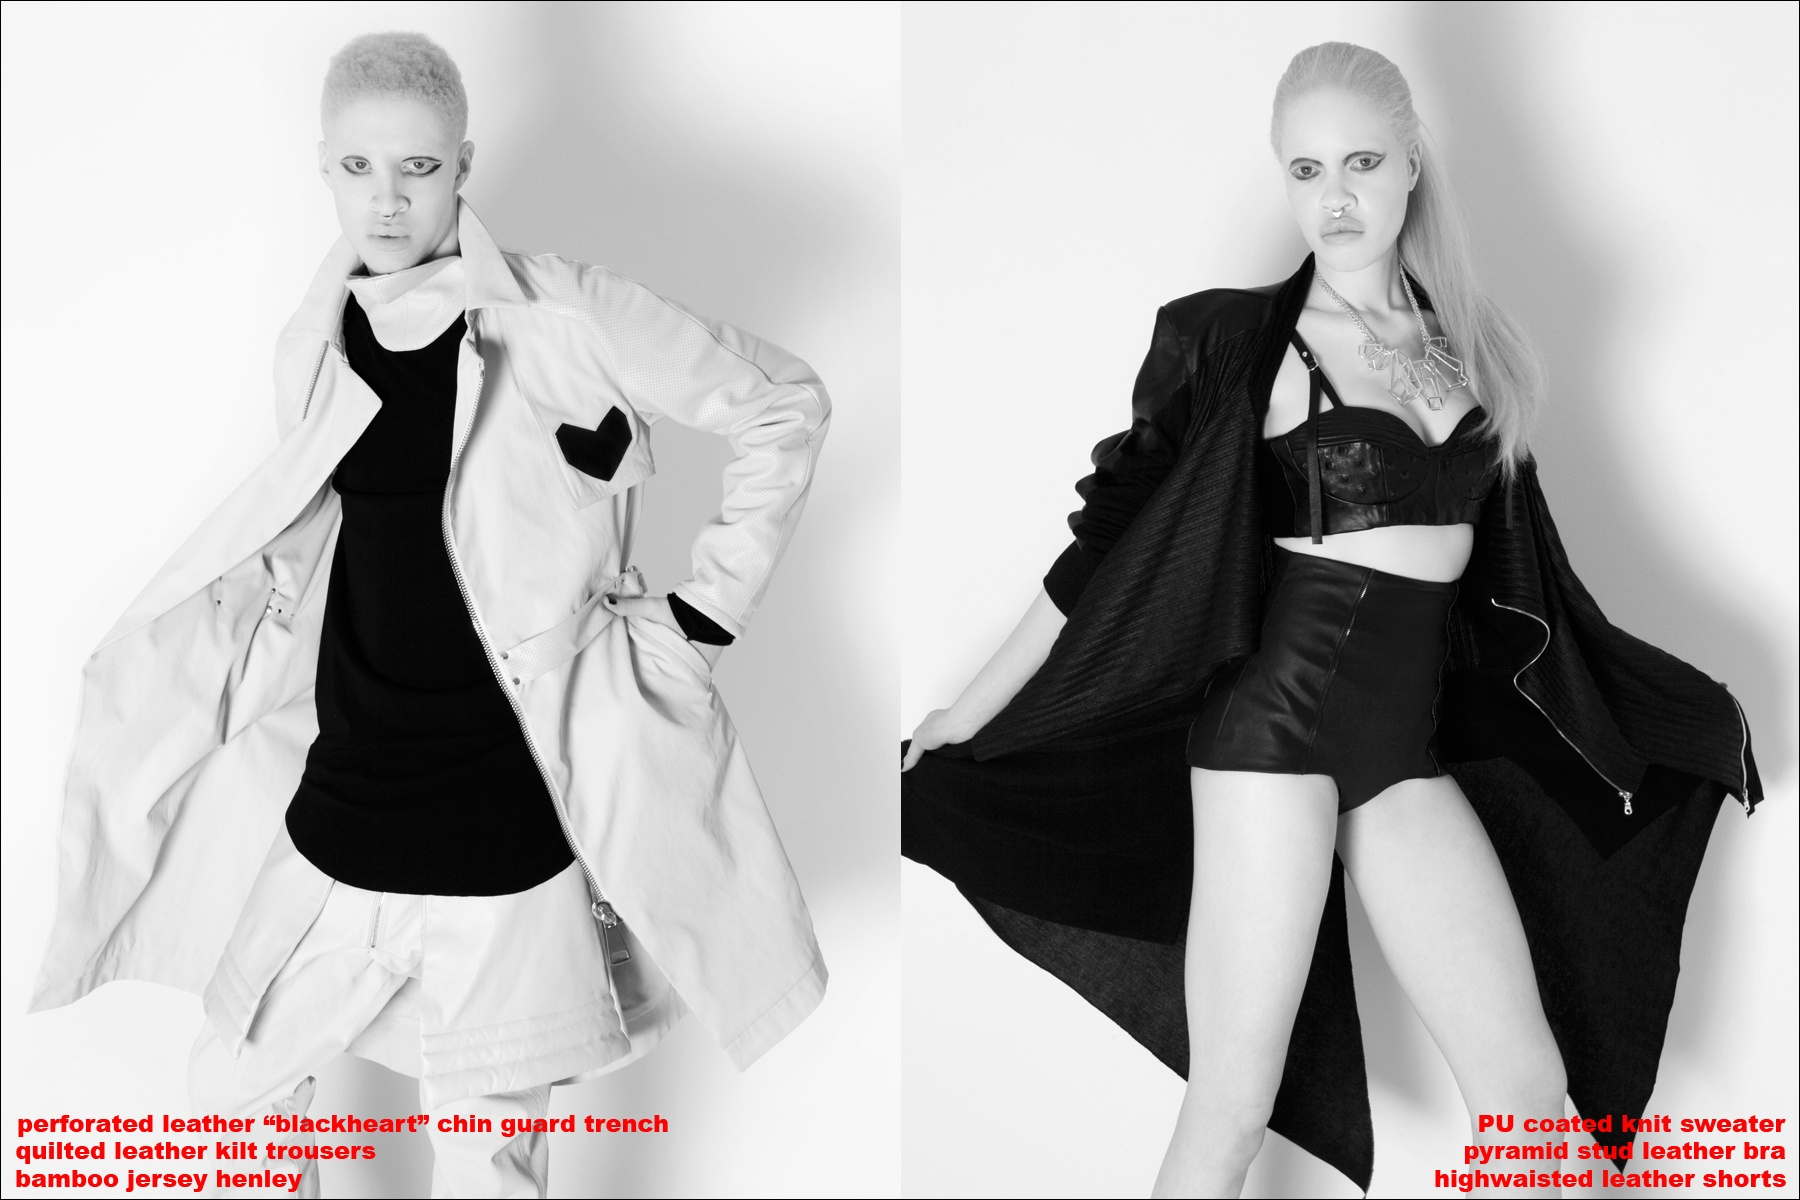 Albino models Shaun Ross and Diandra Forrest in Ashton Michael AW 2013, photographed by Alexander Thompson for Ponyboy Magazine.